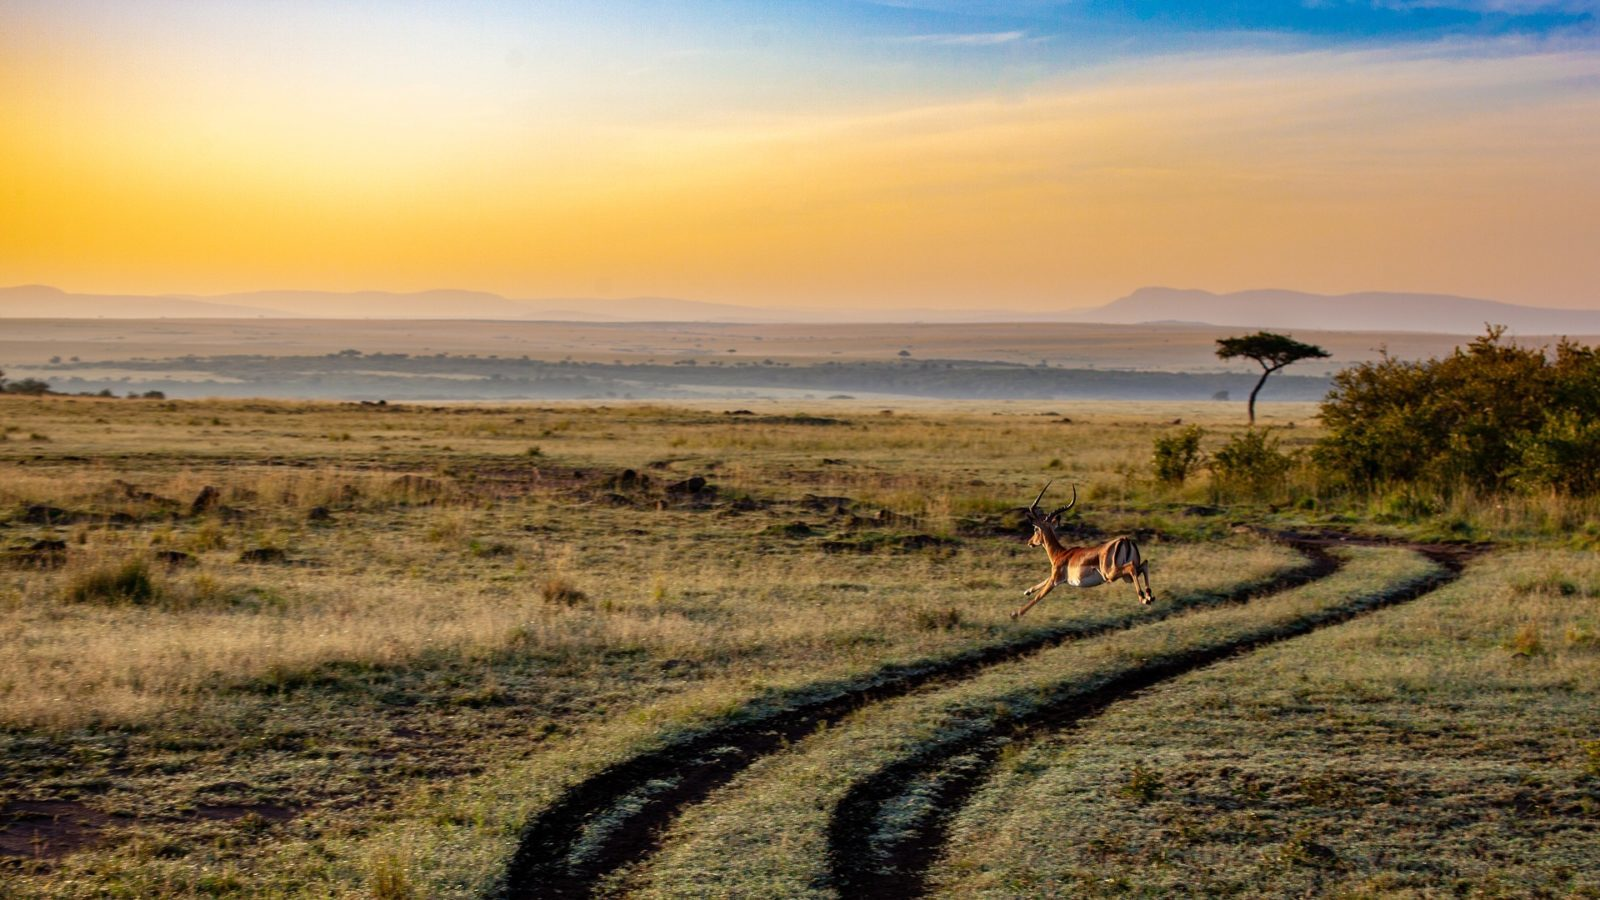 Pride Rock | Antelope in Kenya